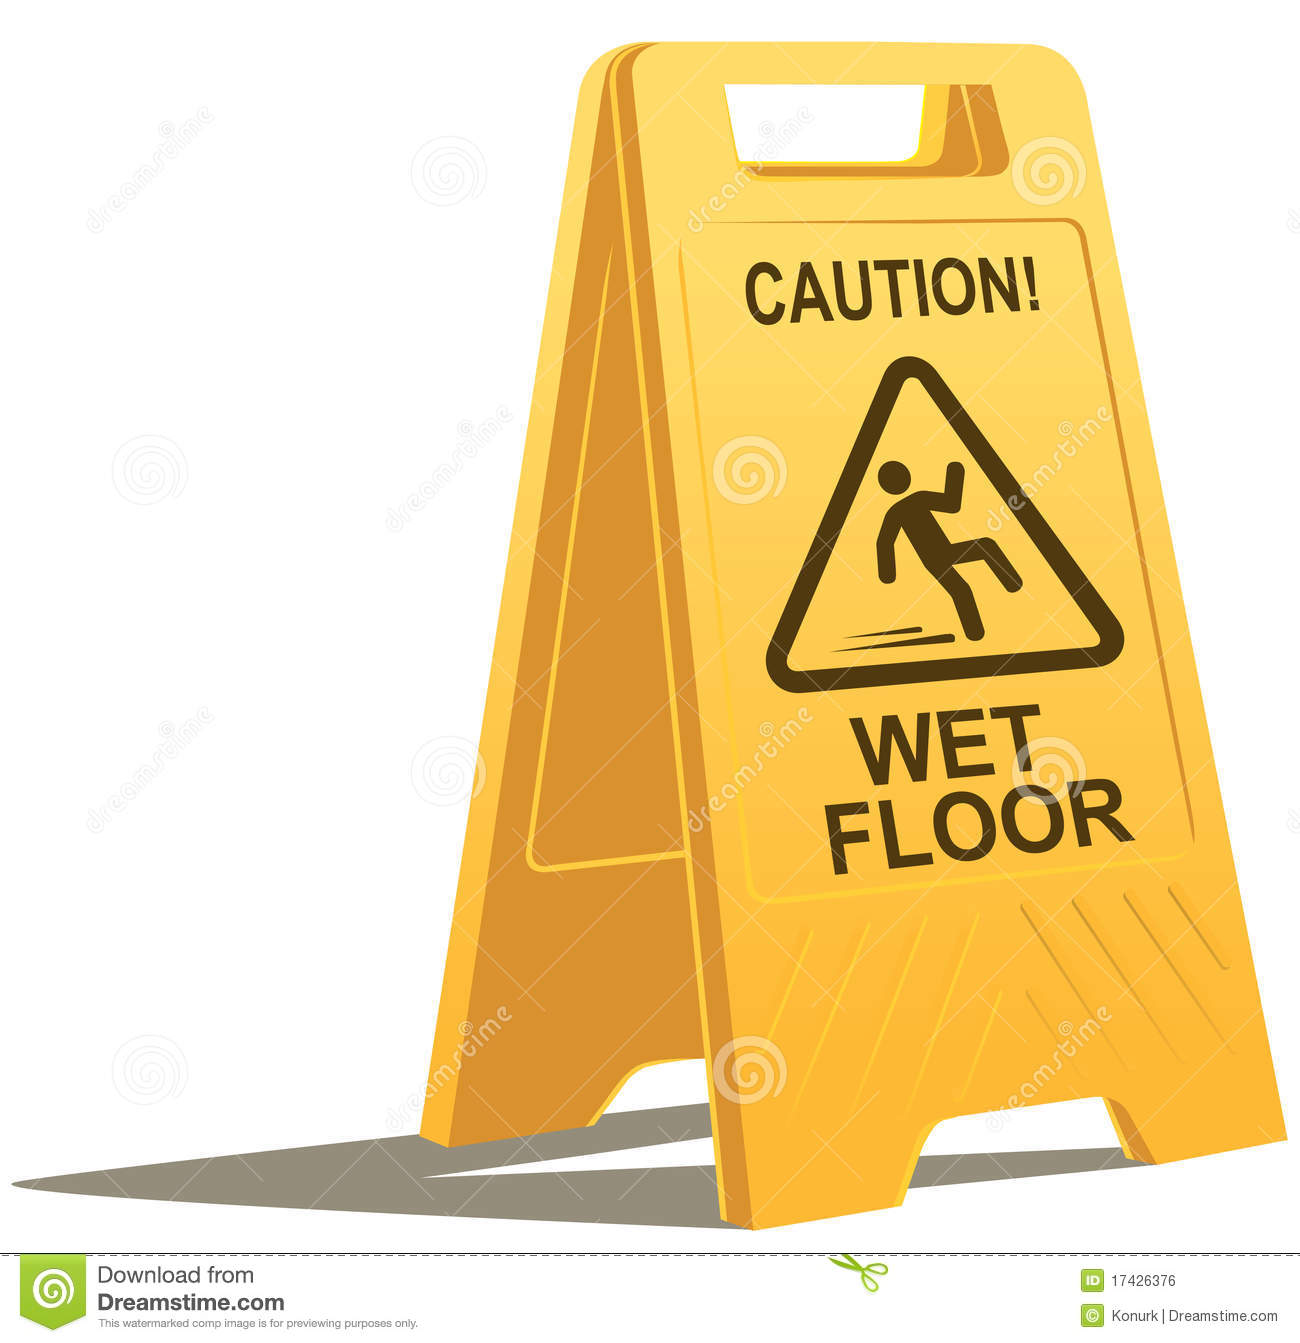 Wet Floor Caution Sign Royalty Free Stock Image Image